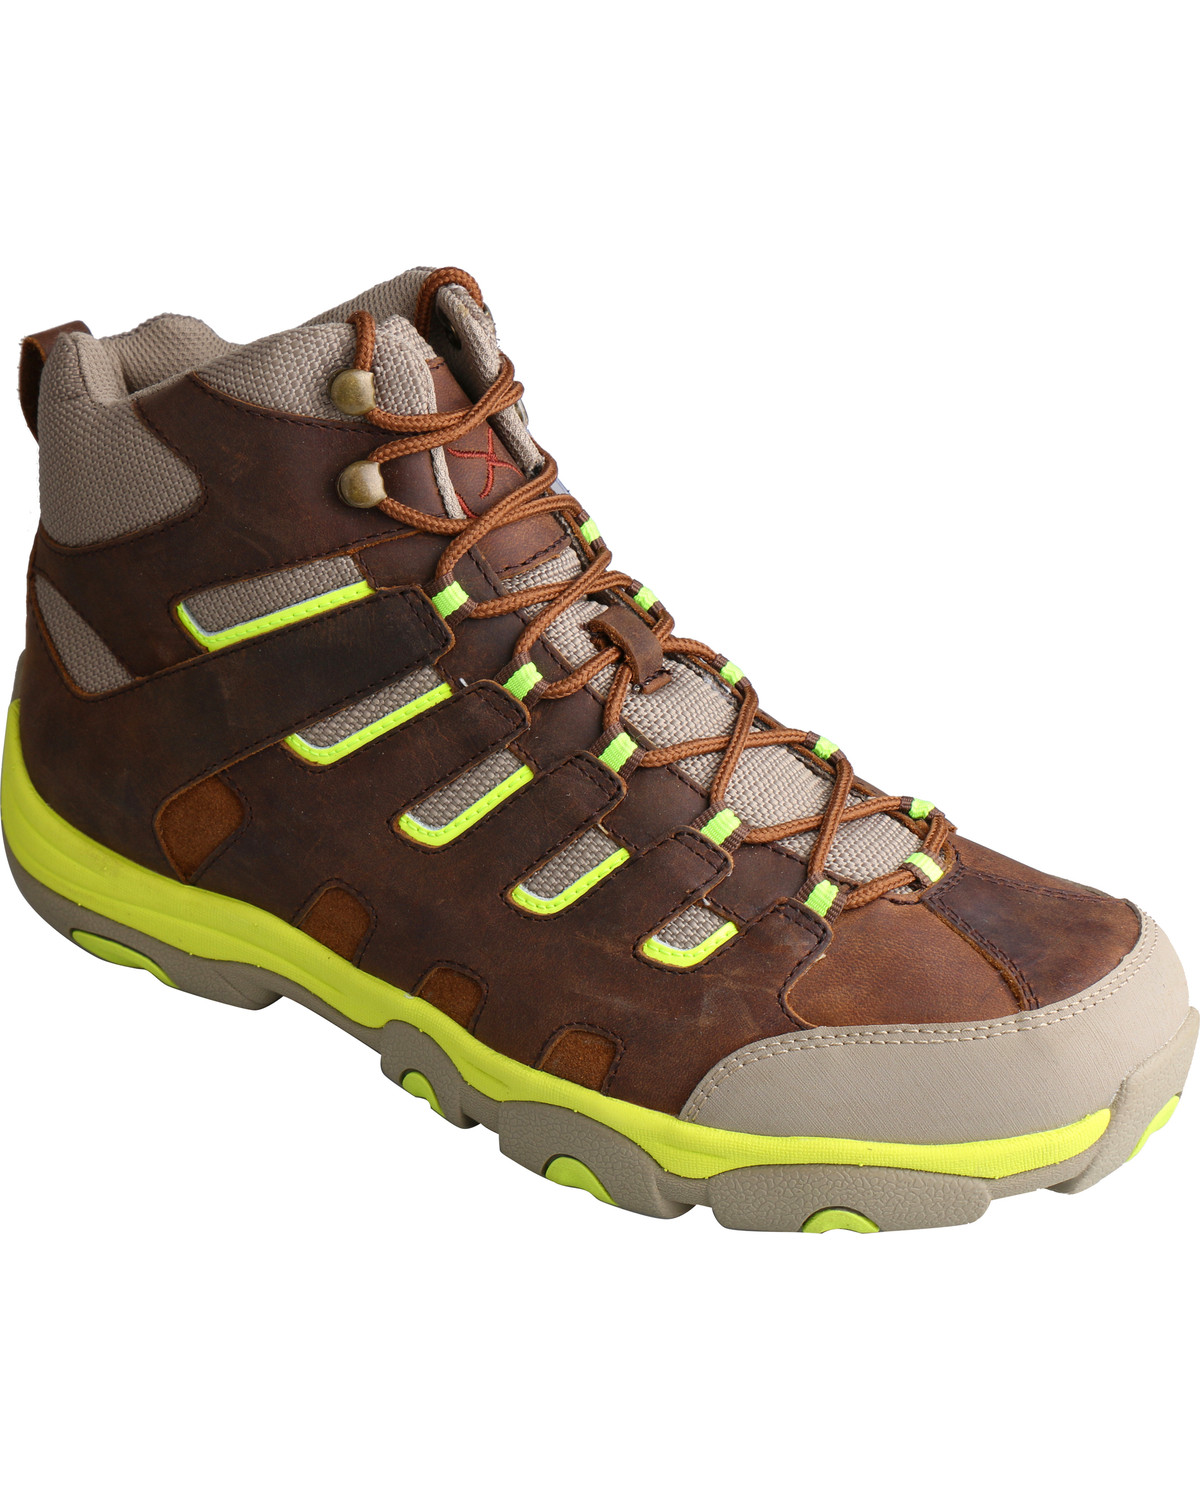 Twisted X Men S Hiker Brown And Neon Lace Up Boots Boot Barn